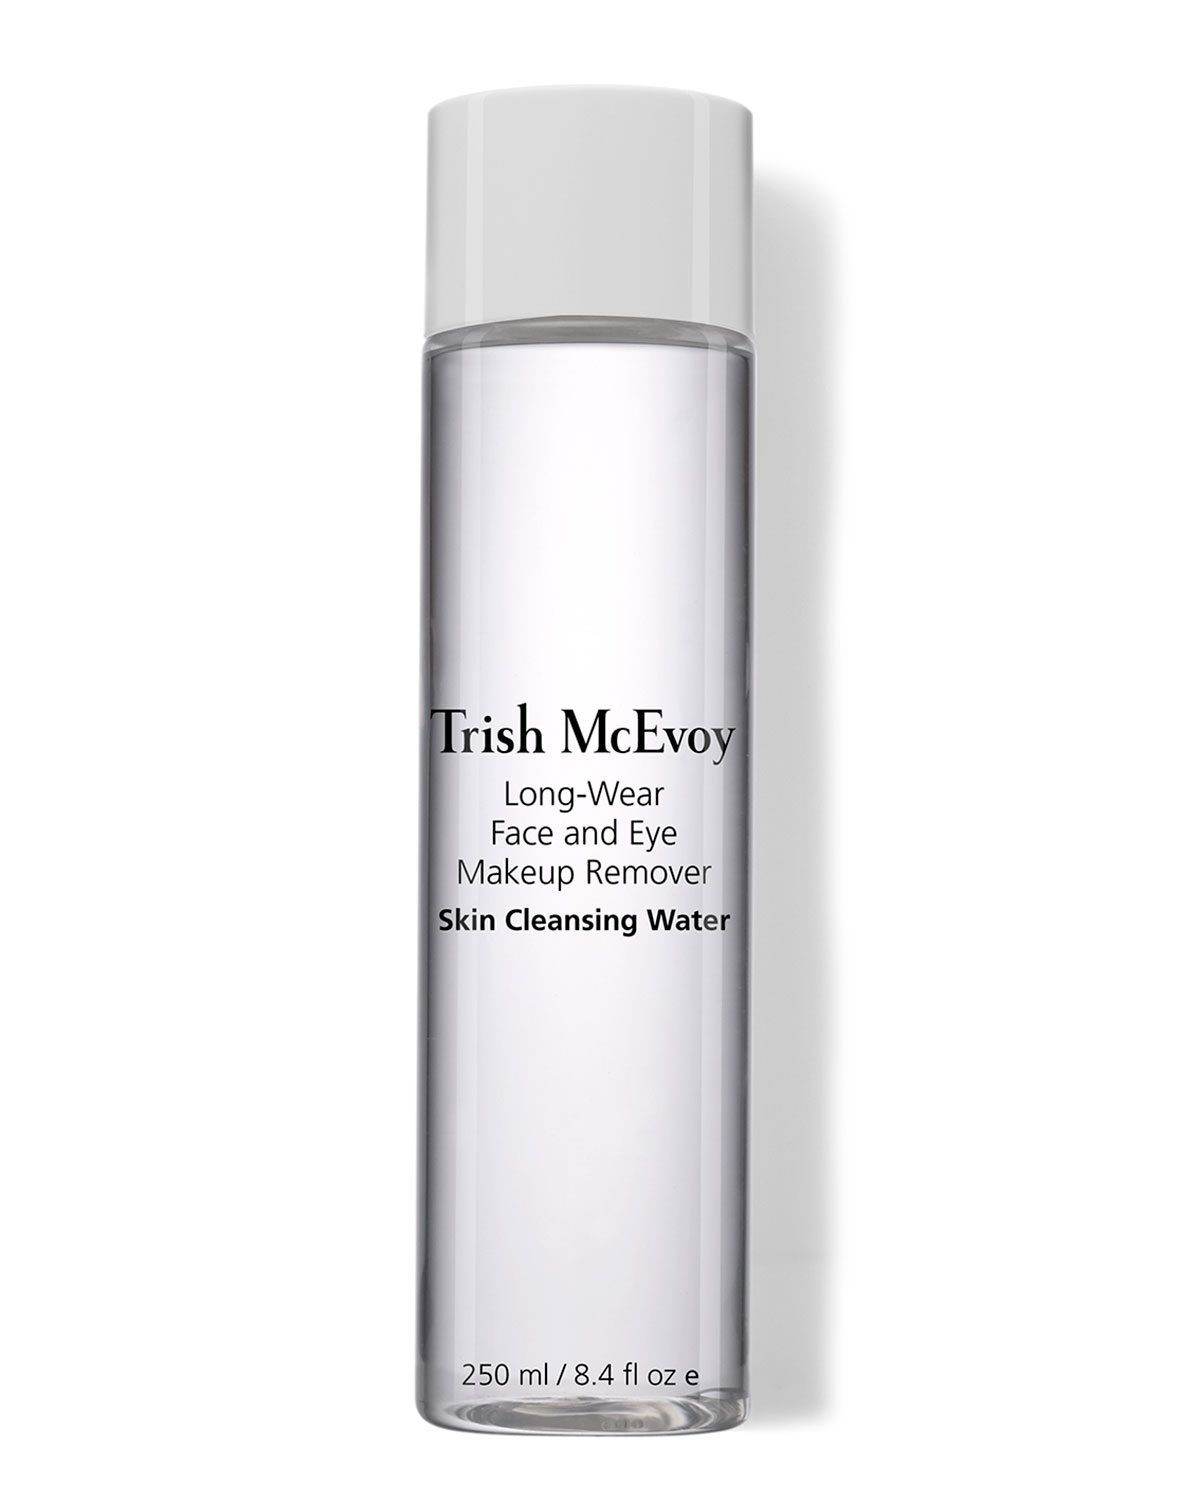 Trish Mcevoy INSTANT SOLUTIONS MICELLAR CLEANSING WATER, 8.4 OZ. / 250 ML